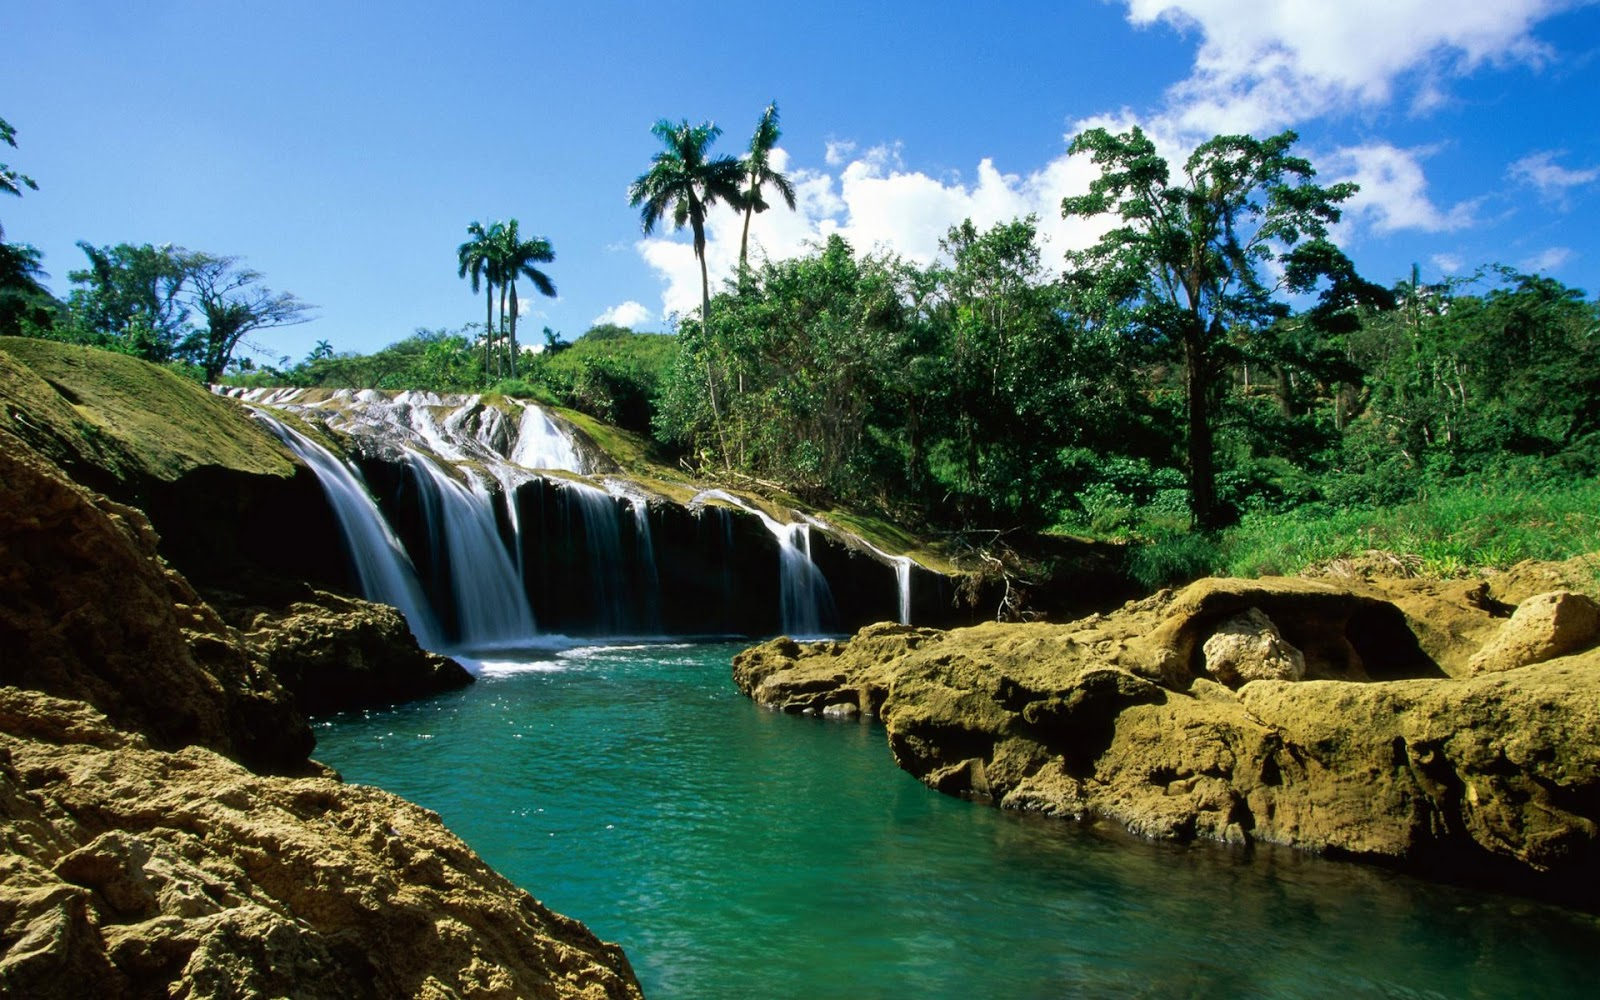 HD Waterfall Live Wallpaper For Android Download 1600x1000